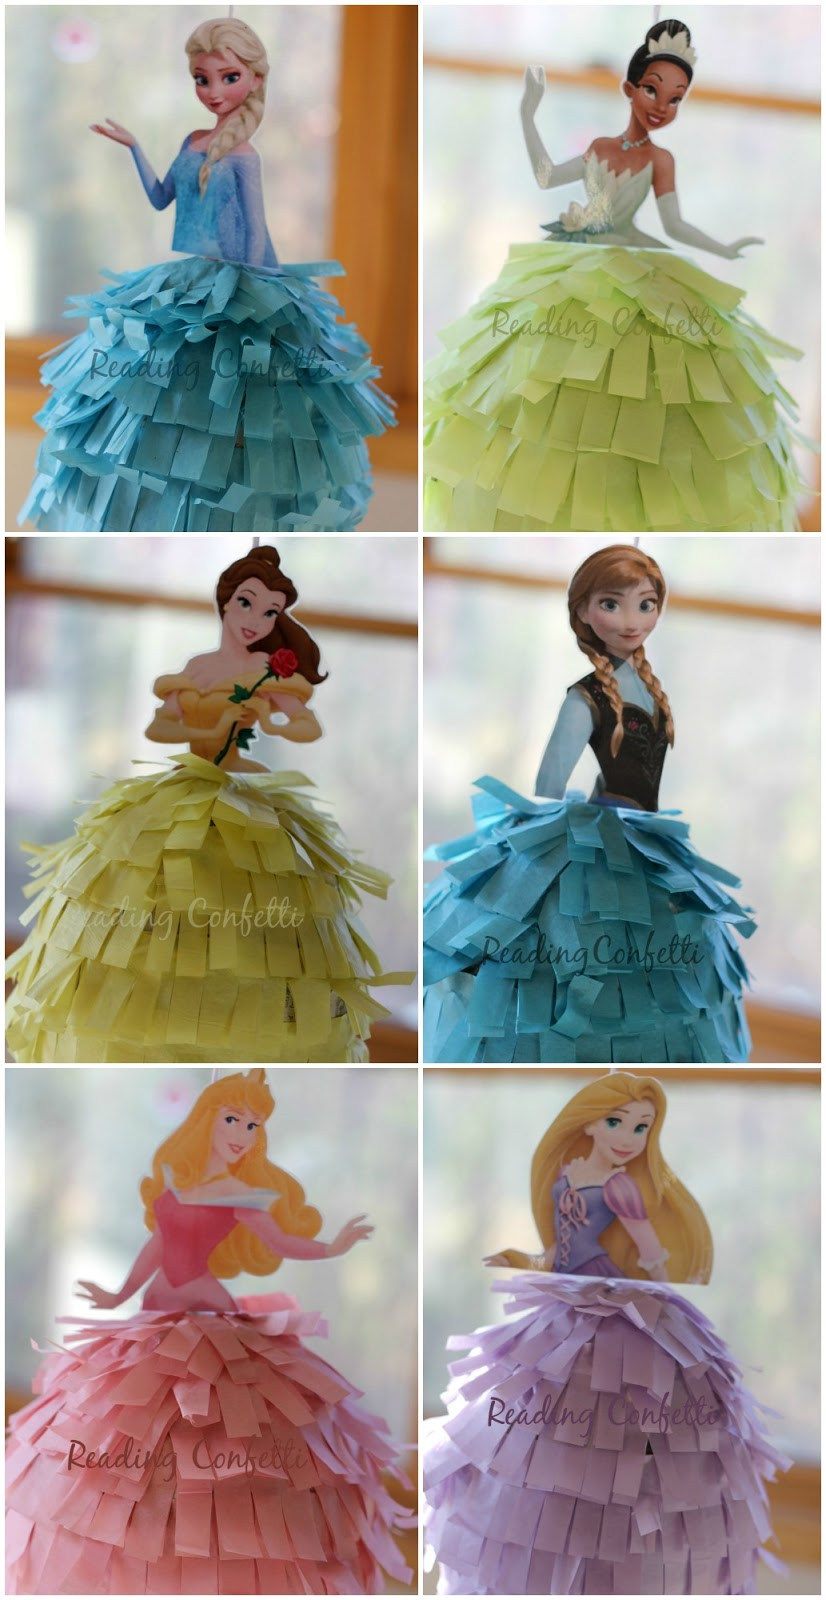 Make your own pinatas for a Frozen or princess themed birthday party